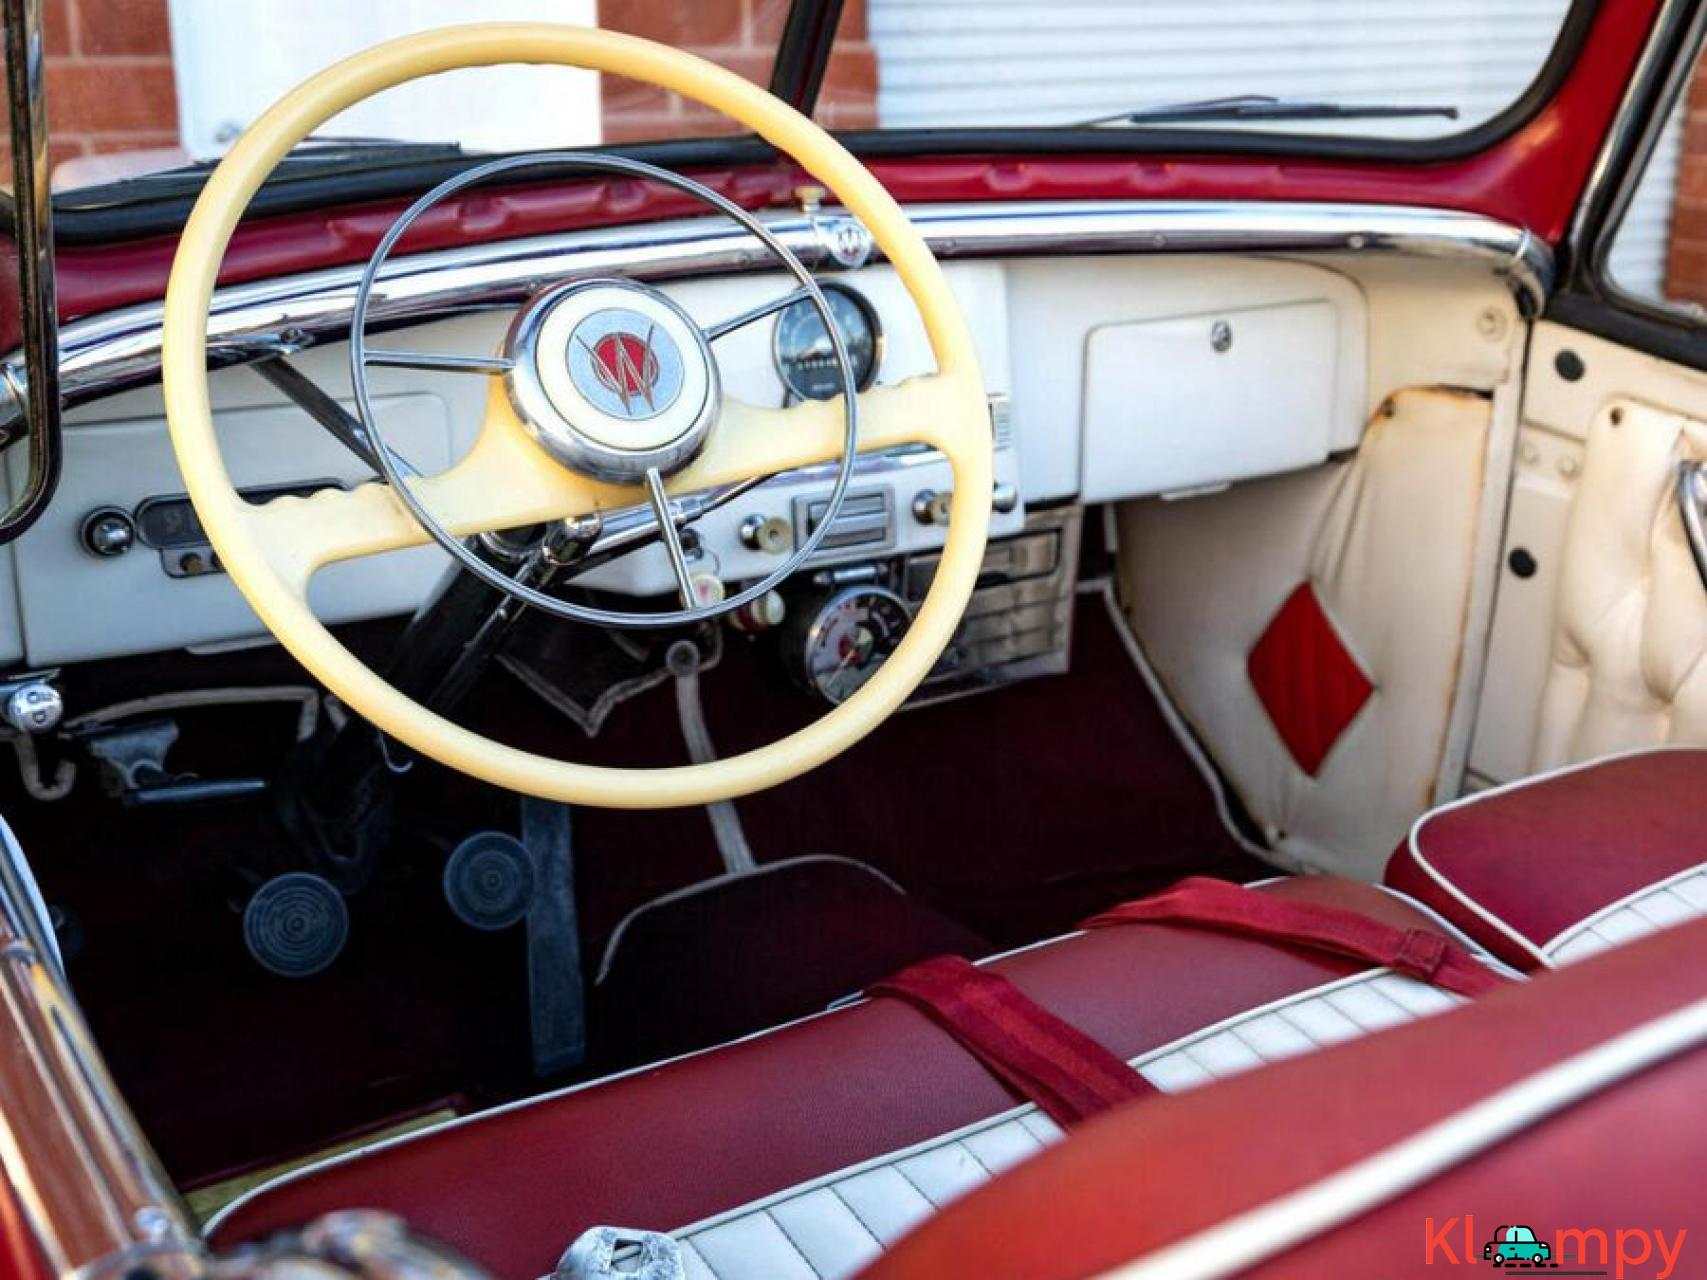 1951 Willys Jeepster Convertible 134.2 cu in 2.2 L - 10/17